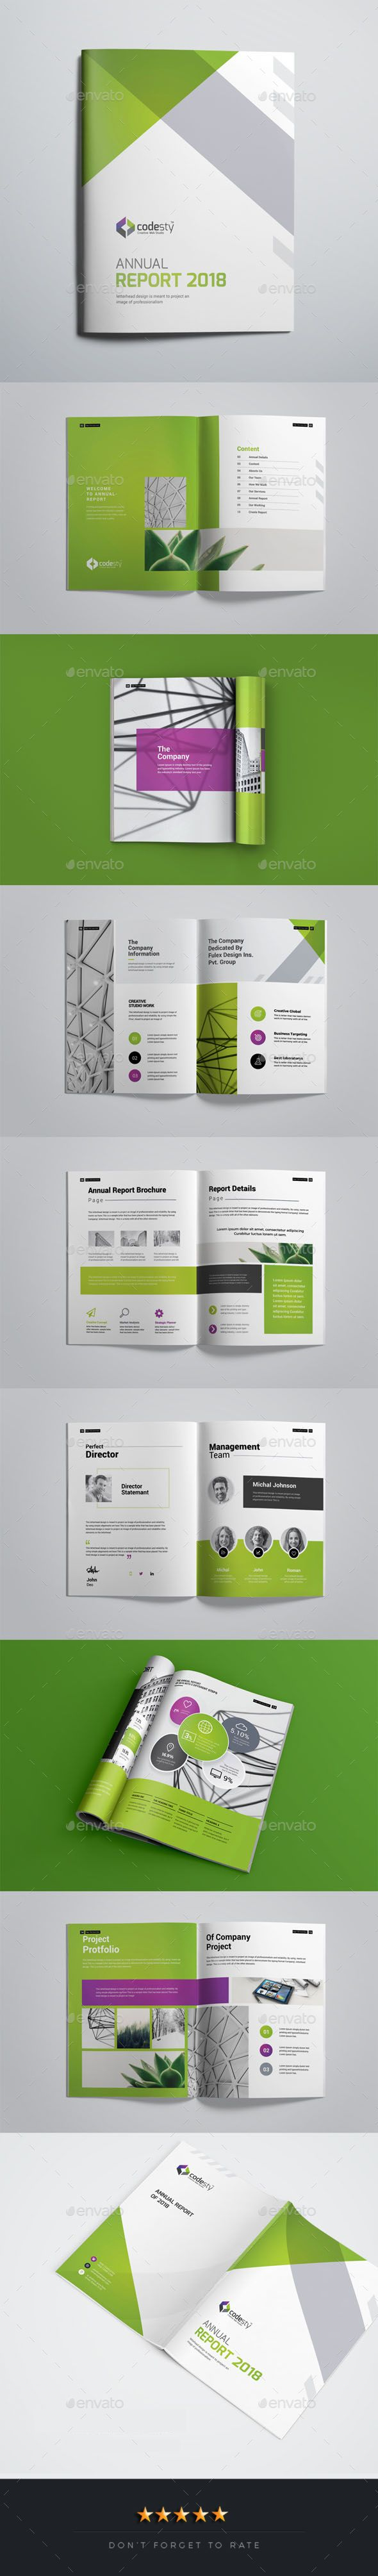 Project Proposal Template Business Templates Indesign Brochure Invoice